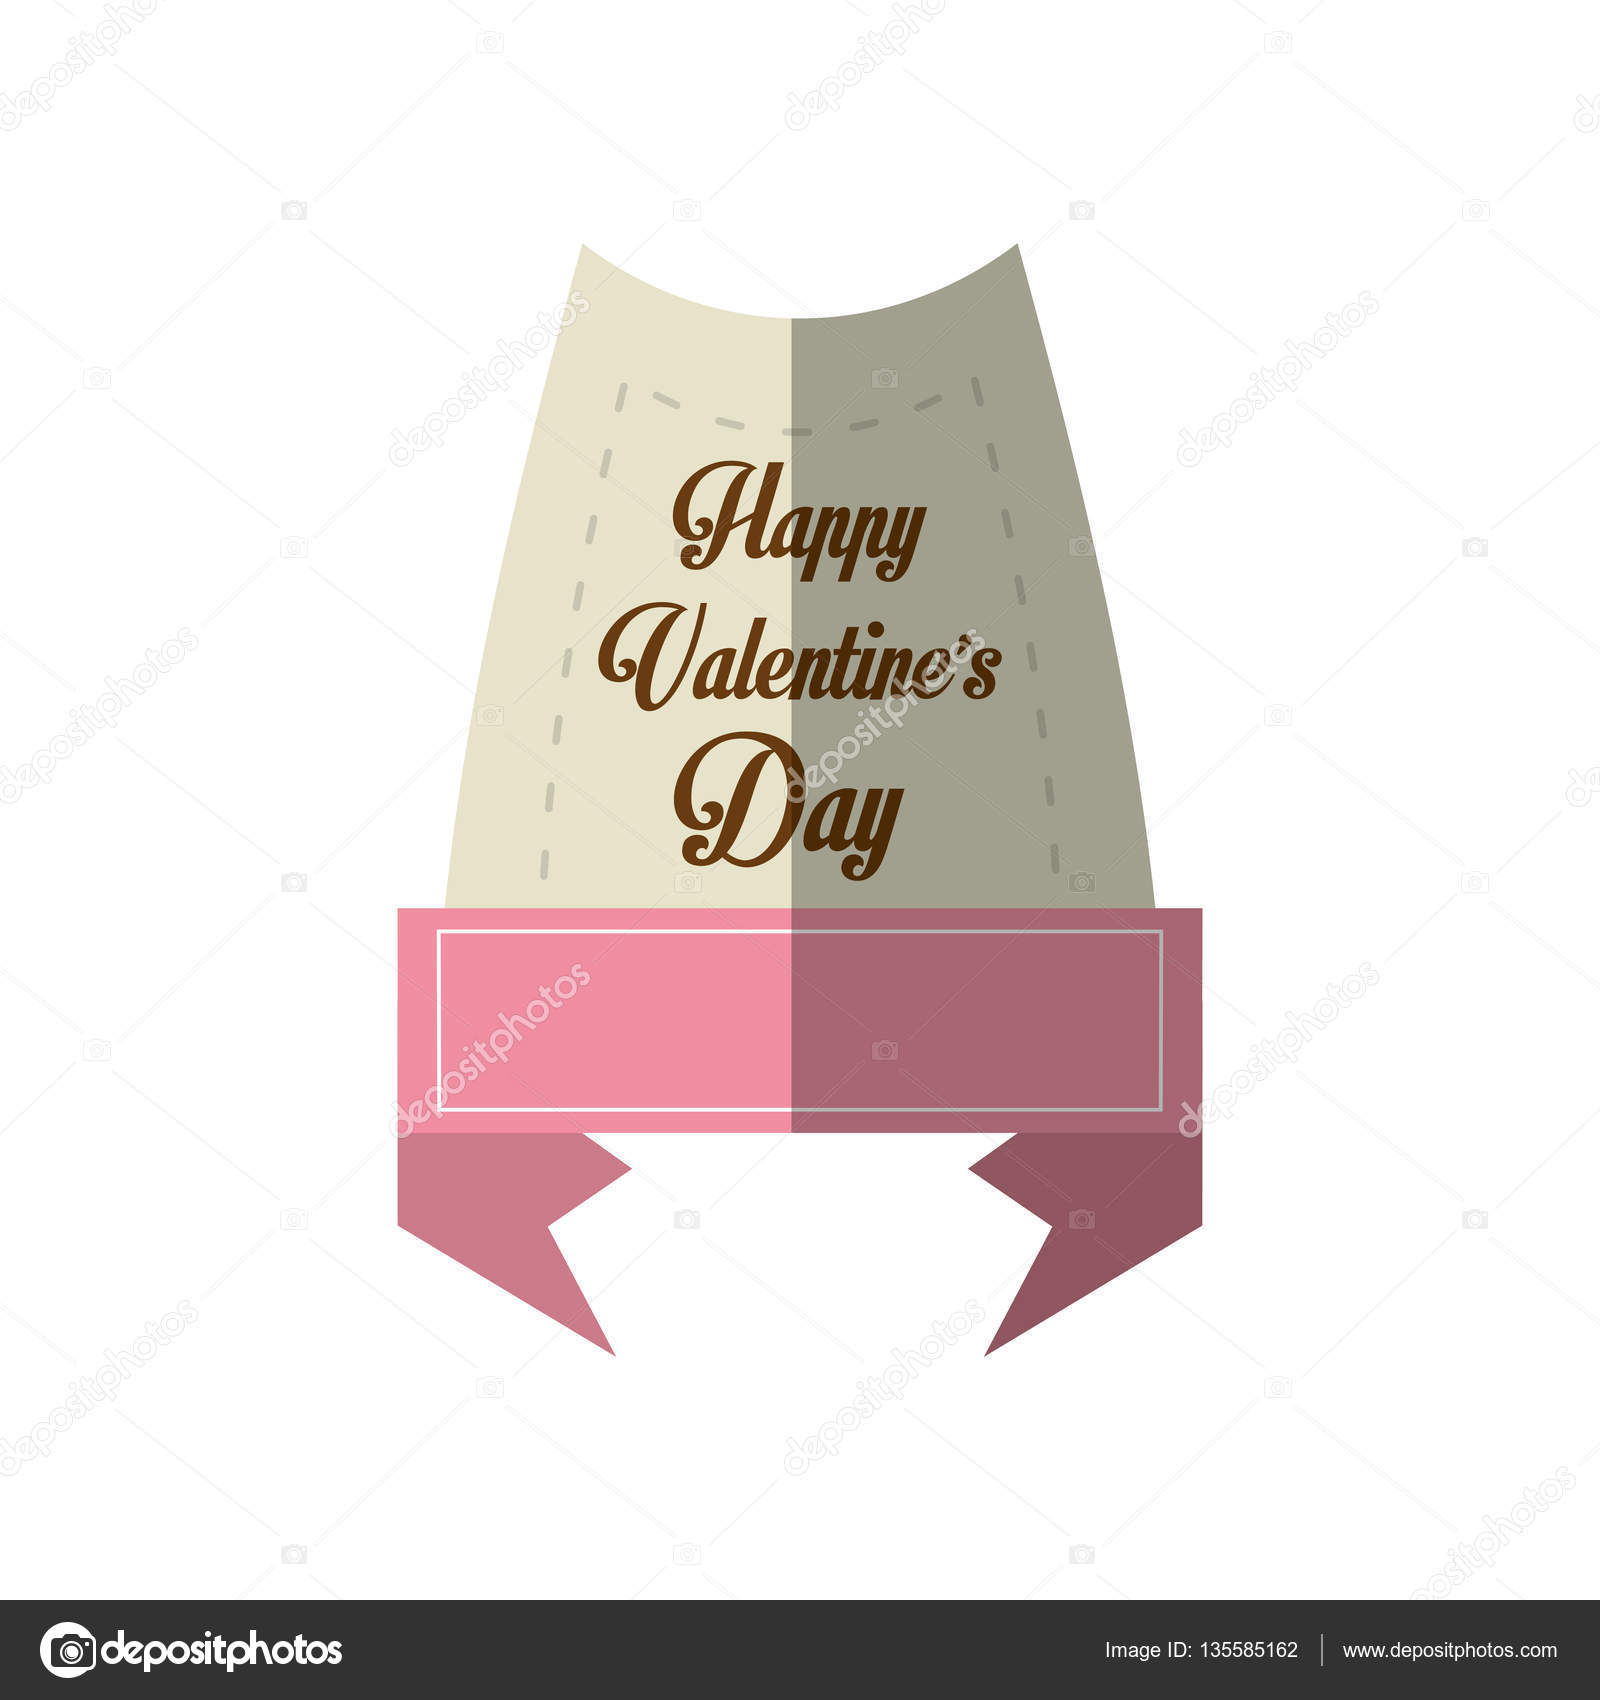 happy valentines day card message pink ribbon shadow stock vector